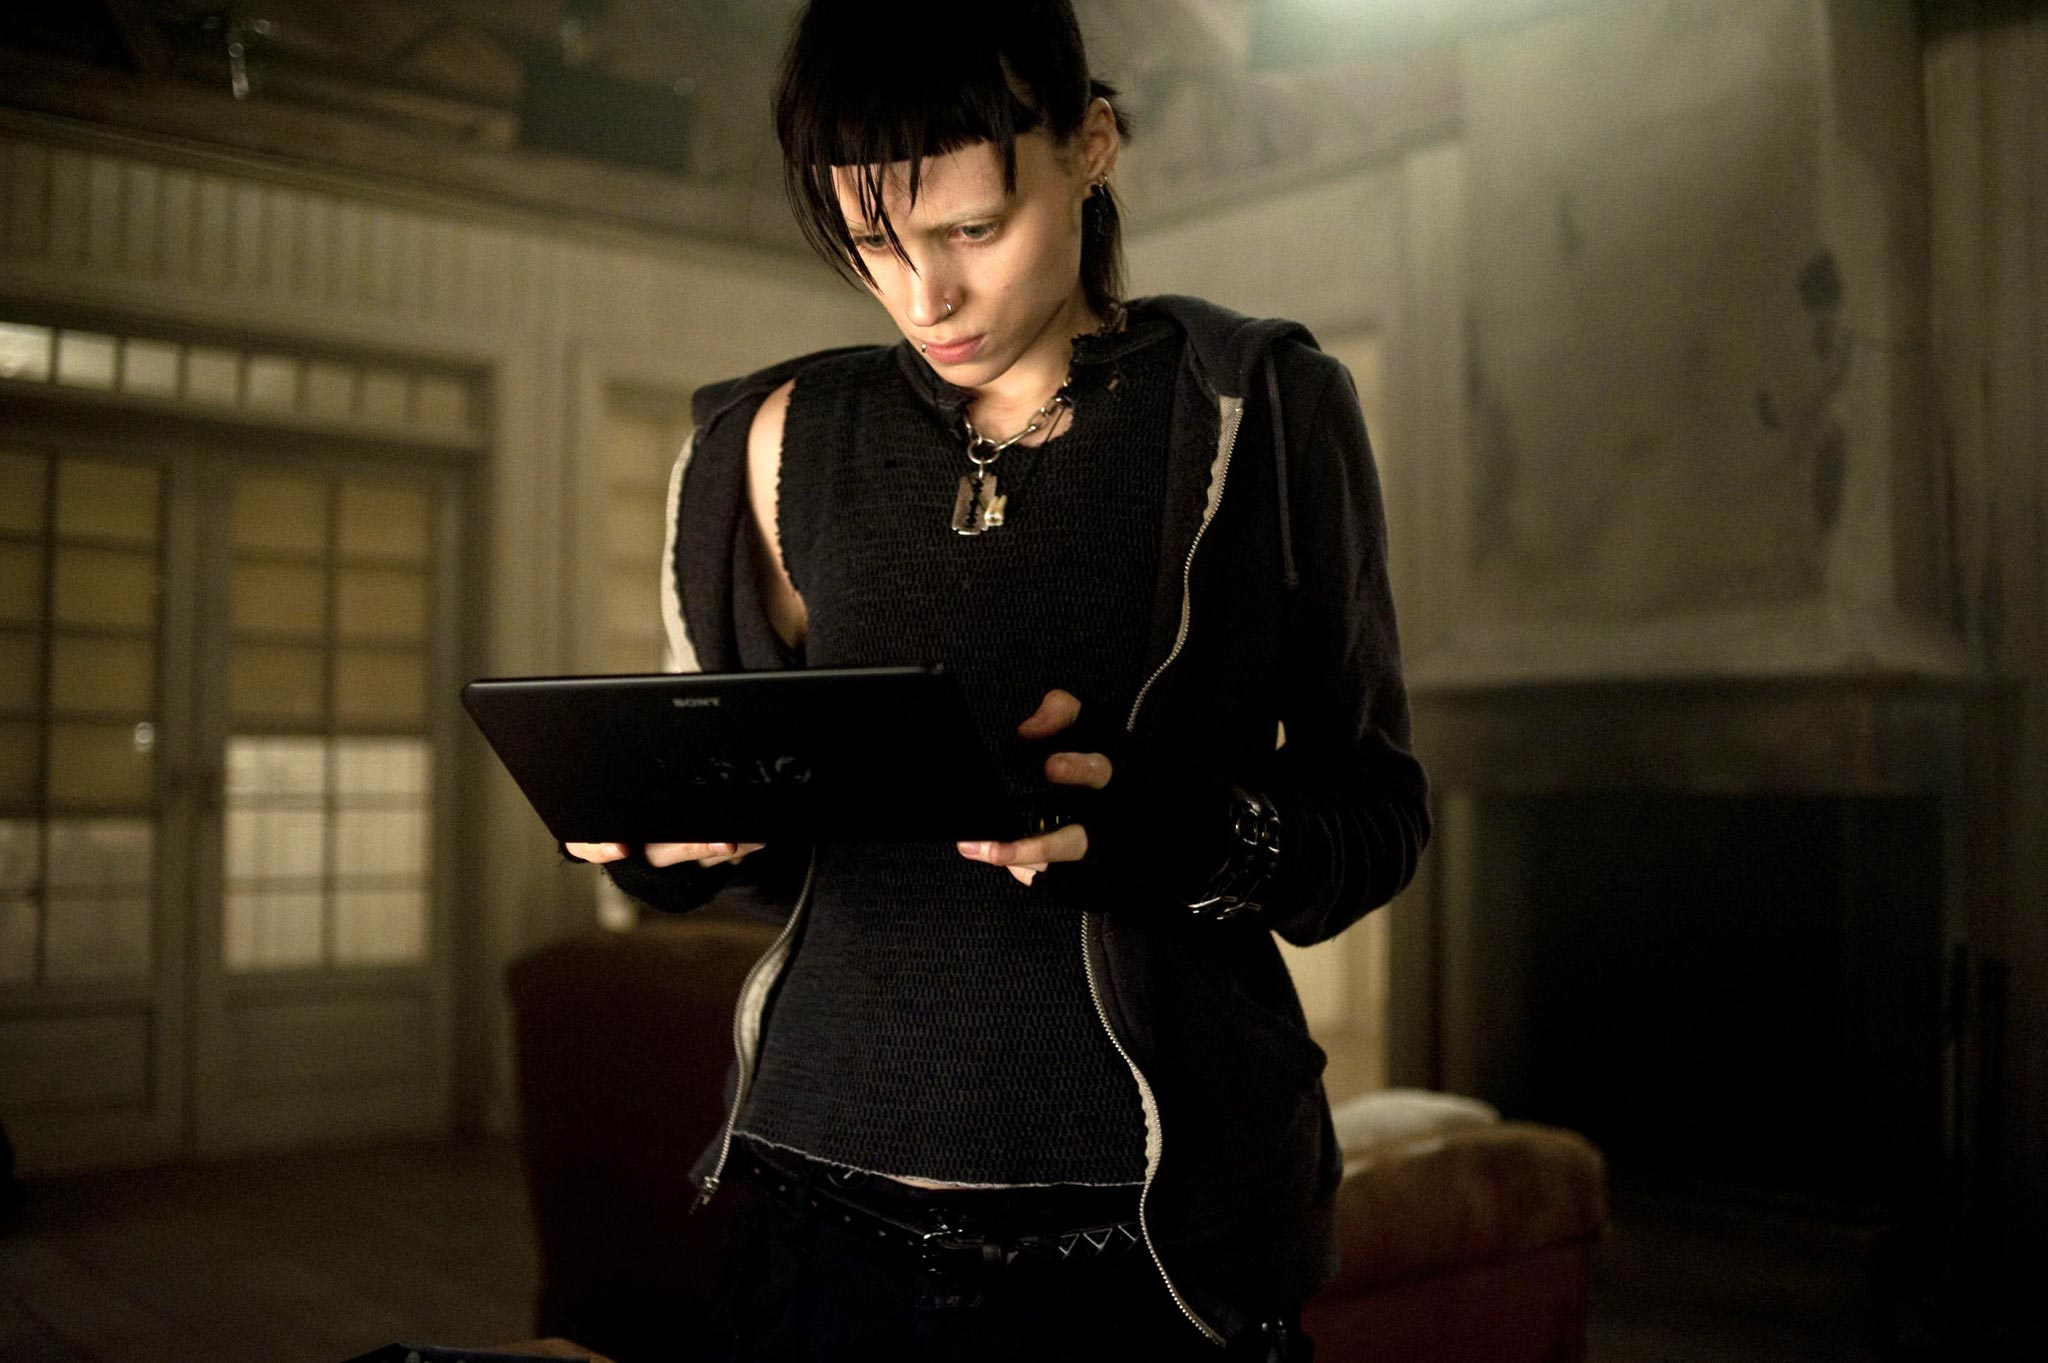 Rooney Mara as Lisbeth Salander, The Girl with the Dragon Tattoo